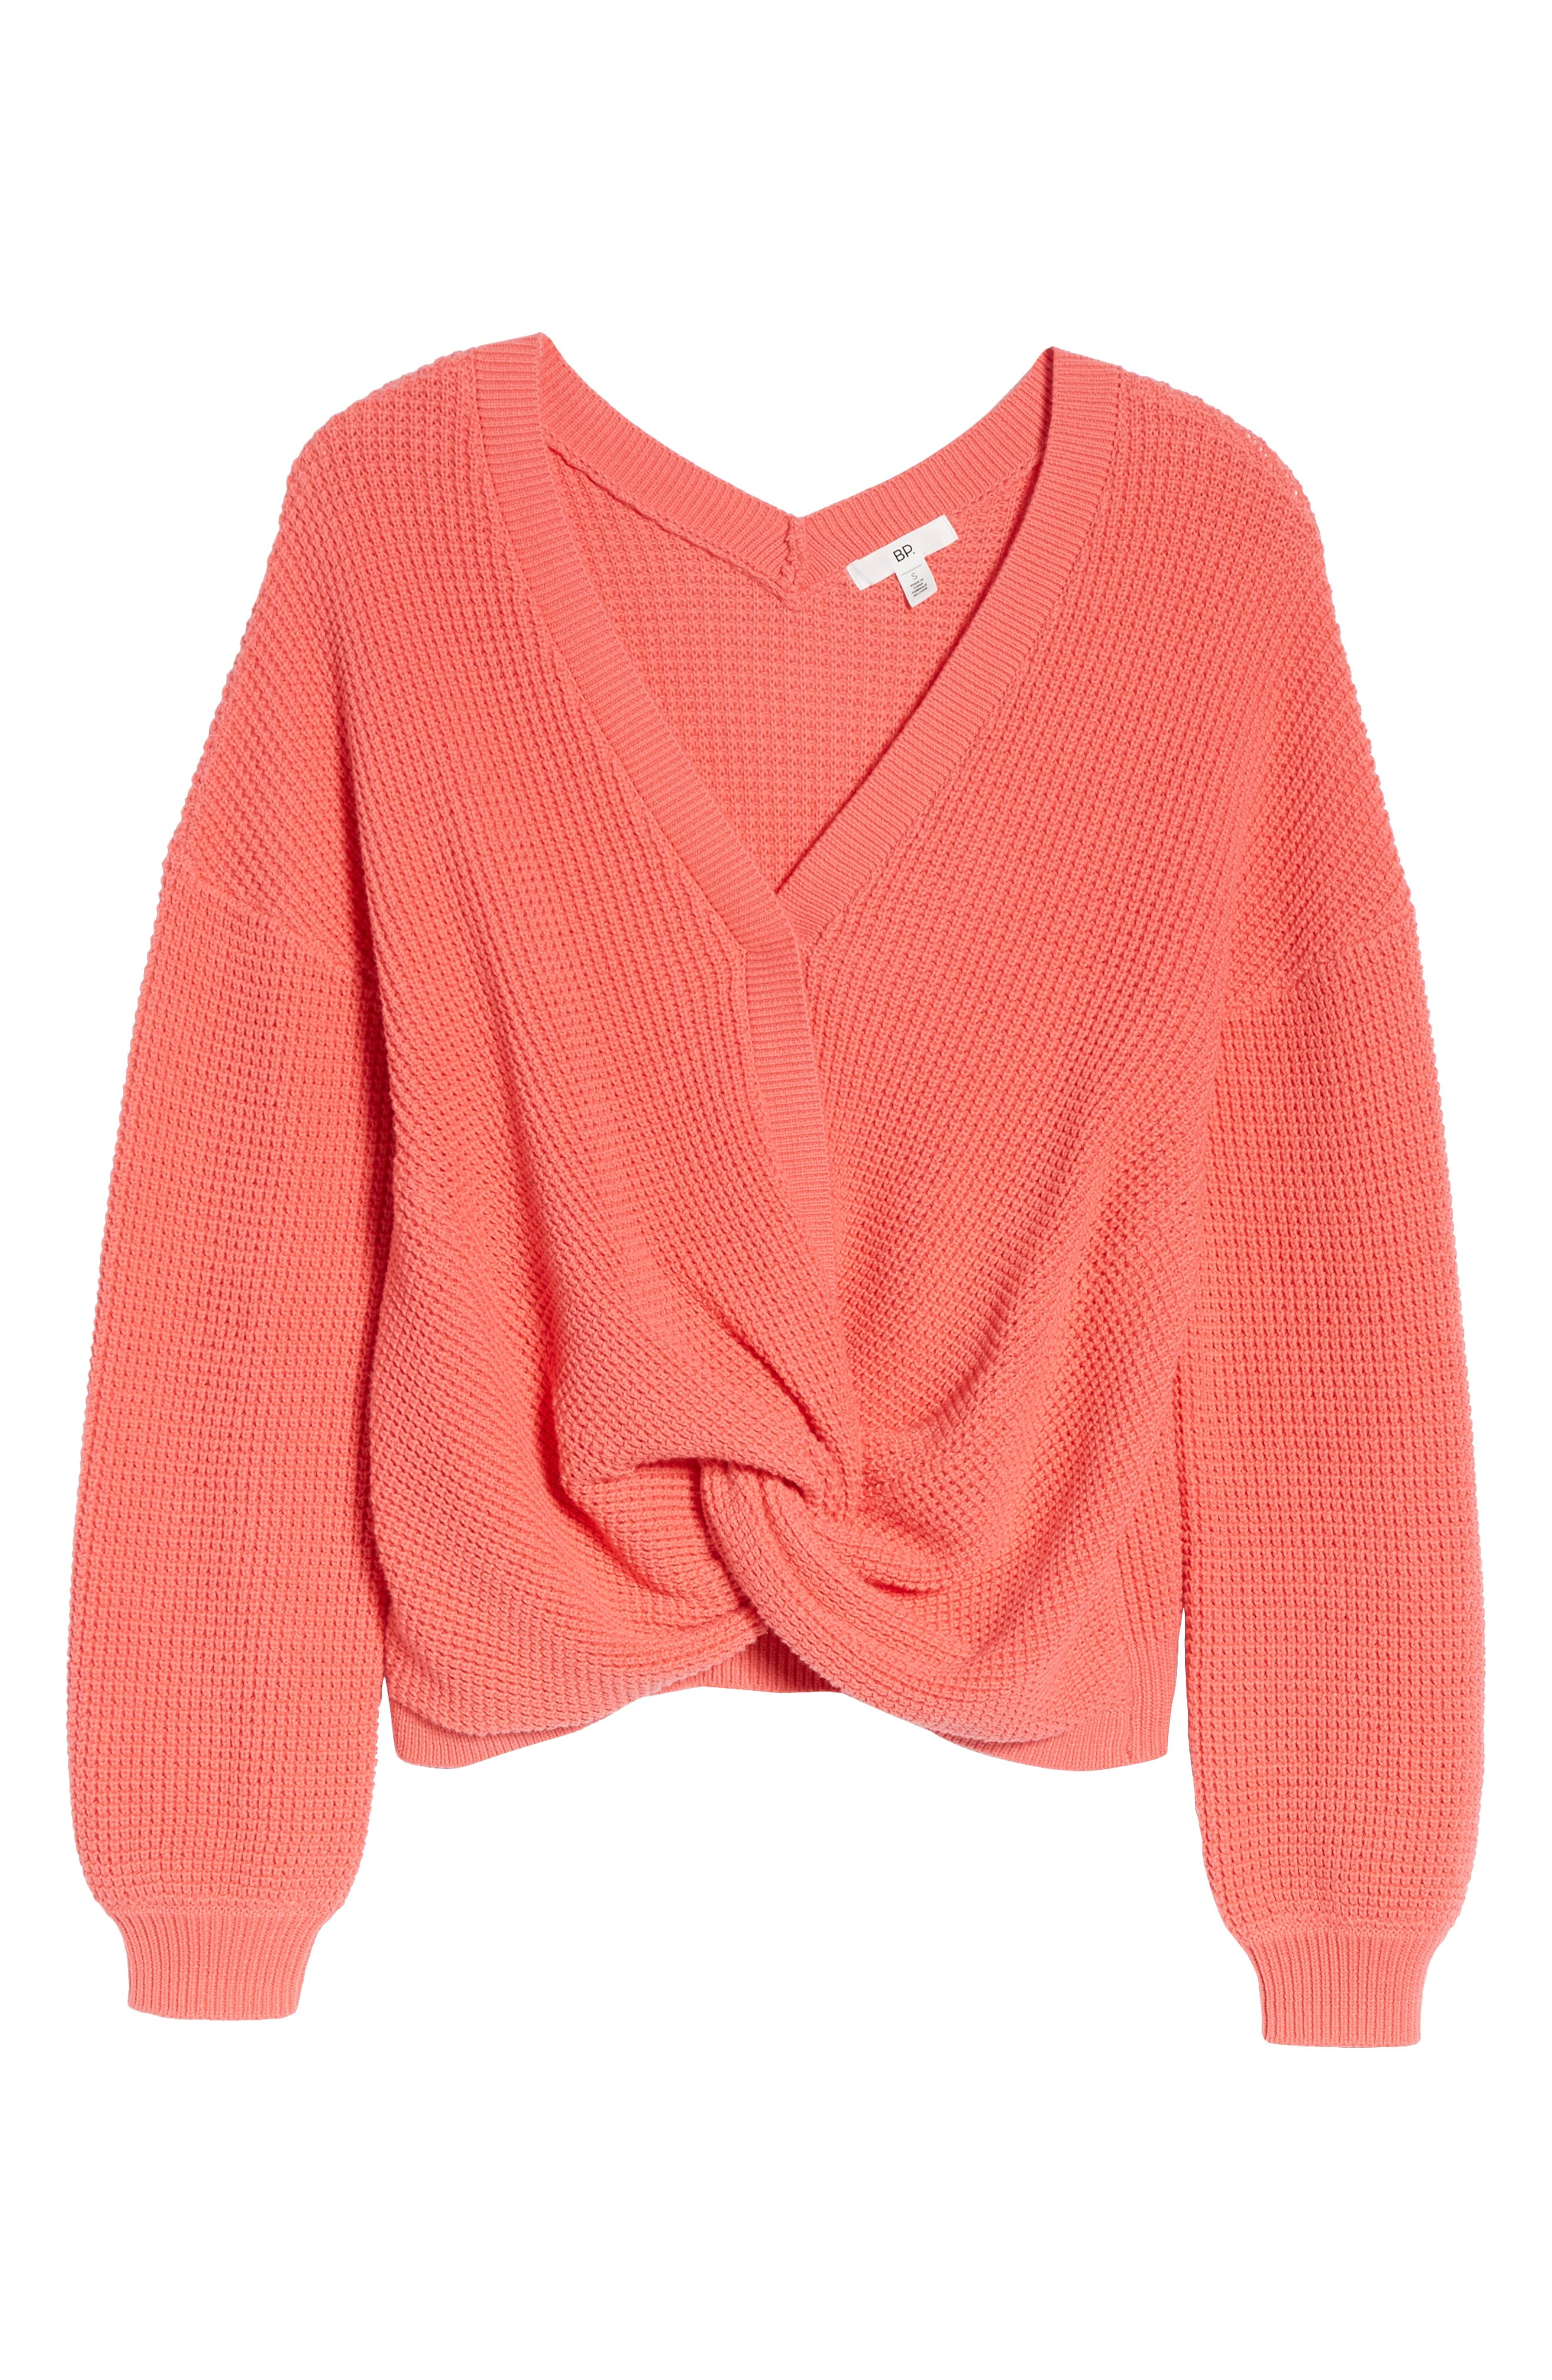 Twist Front Sweater,                             Alternate thumbnail 7, color,                             CORAL SUNKIST